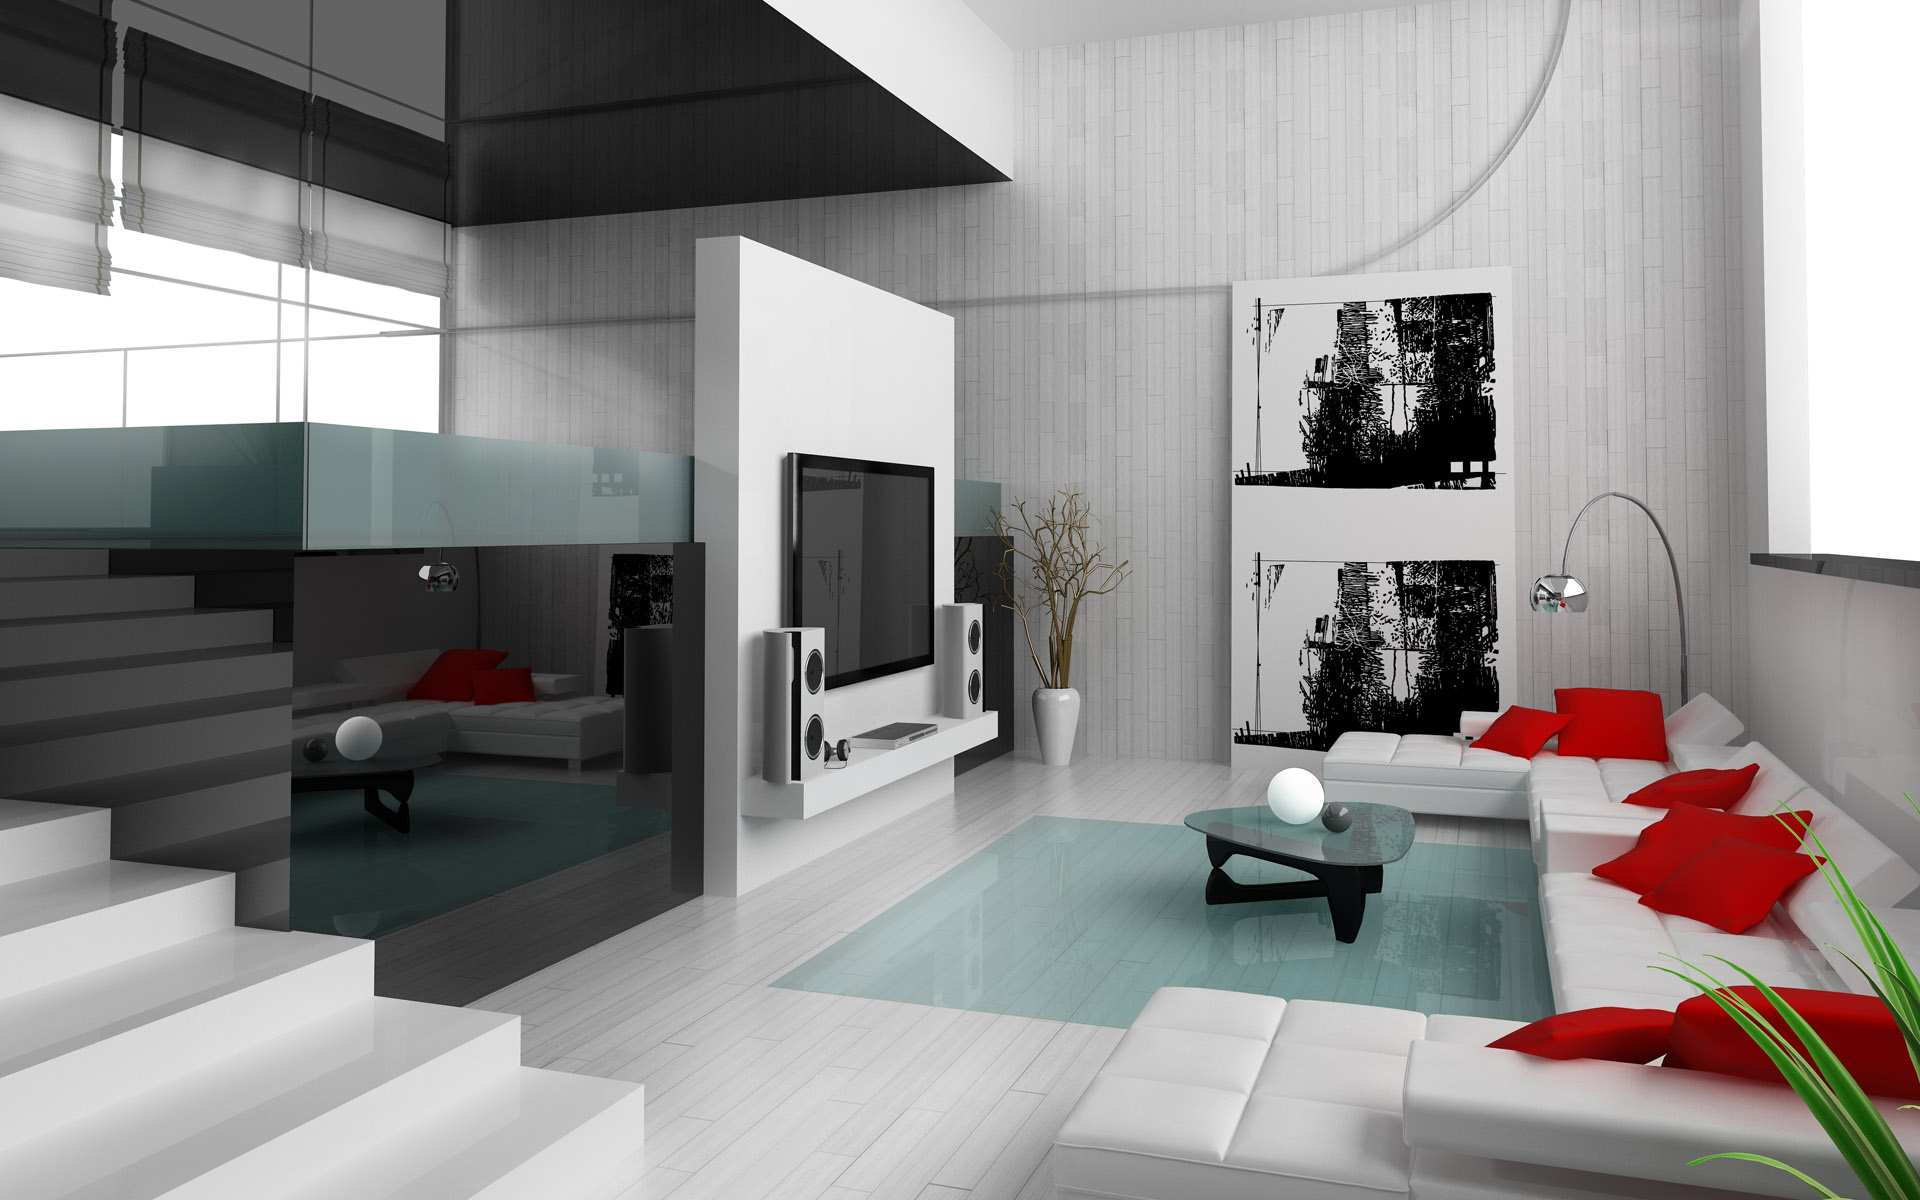 Interior Design Home Ideas 23 Modern Interior Design Ideas For The Perfect Home